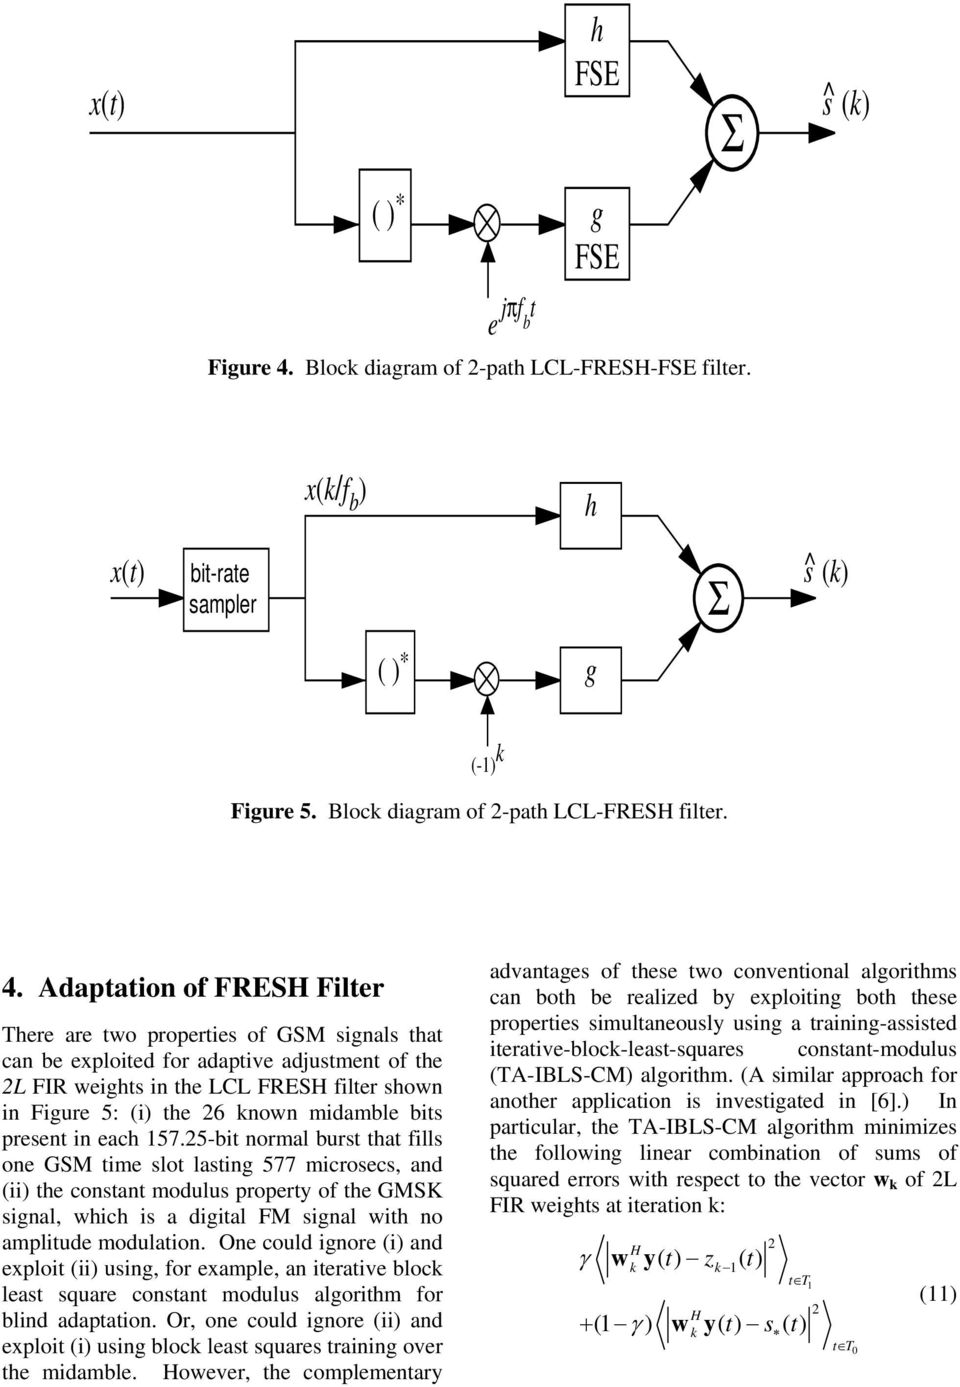 Adaptation of FRES Filter There are two properties of GSM signals that can be exploited for adaptive adjustment of the 2L FIR weights in the LCL FRES filter shown in Figure 5: (i) the 26 nown